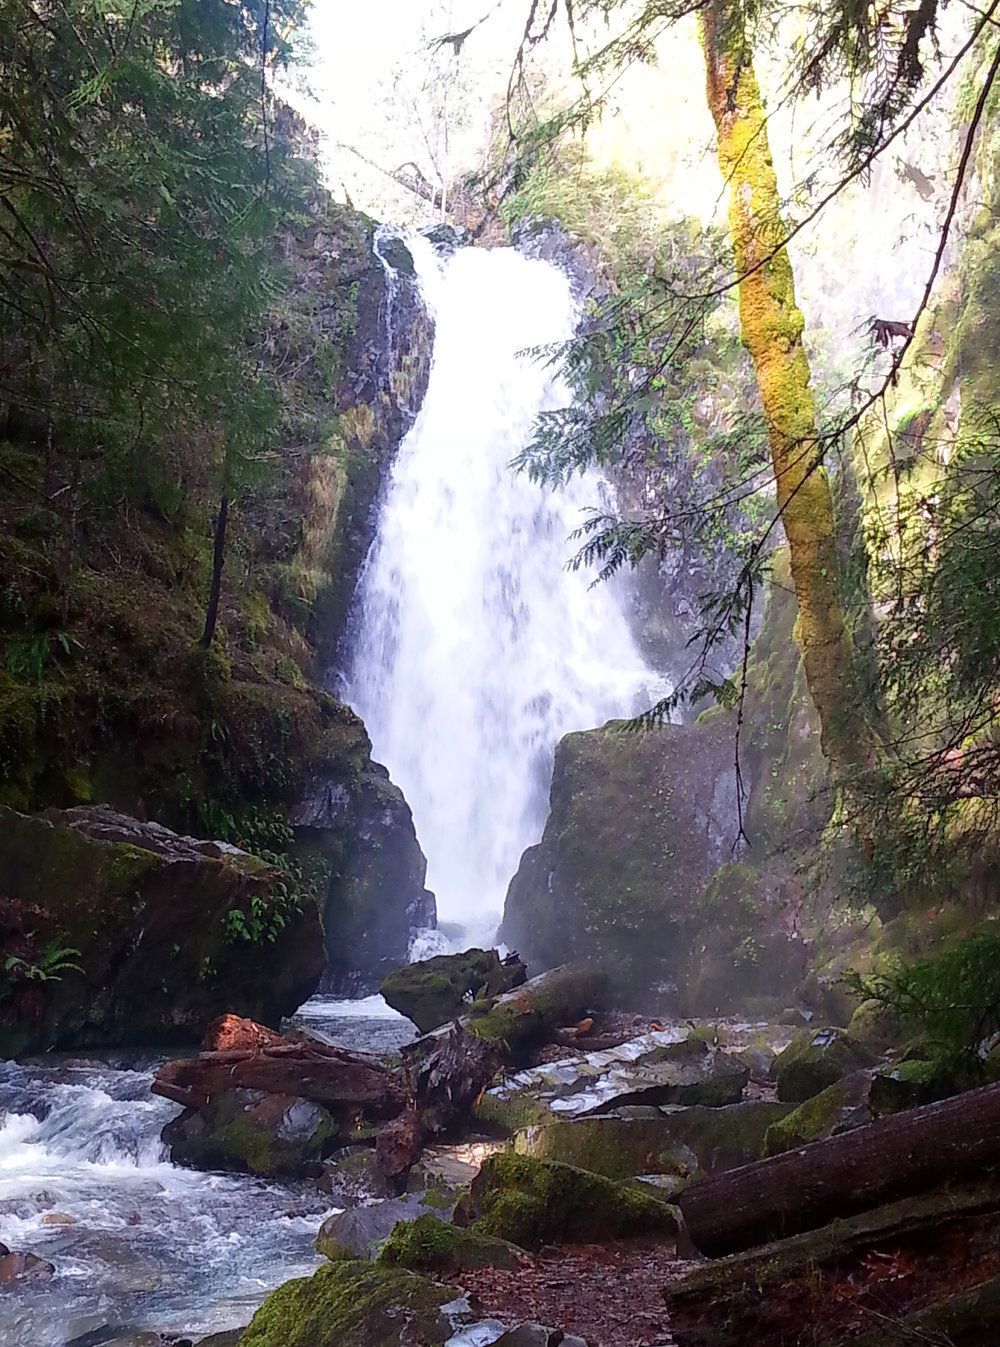 SUSAN CREEK FALLS - Waterfalls - What to do in Southern Oregon - Things to do - Hikes - Kids